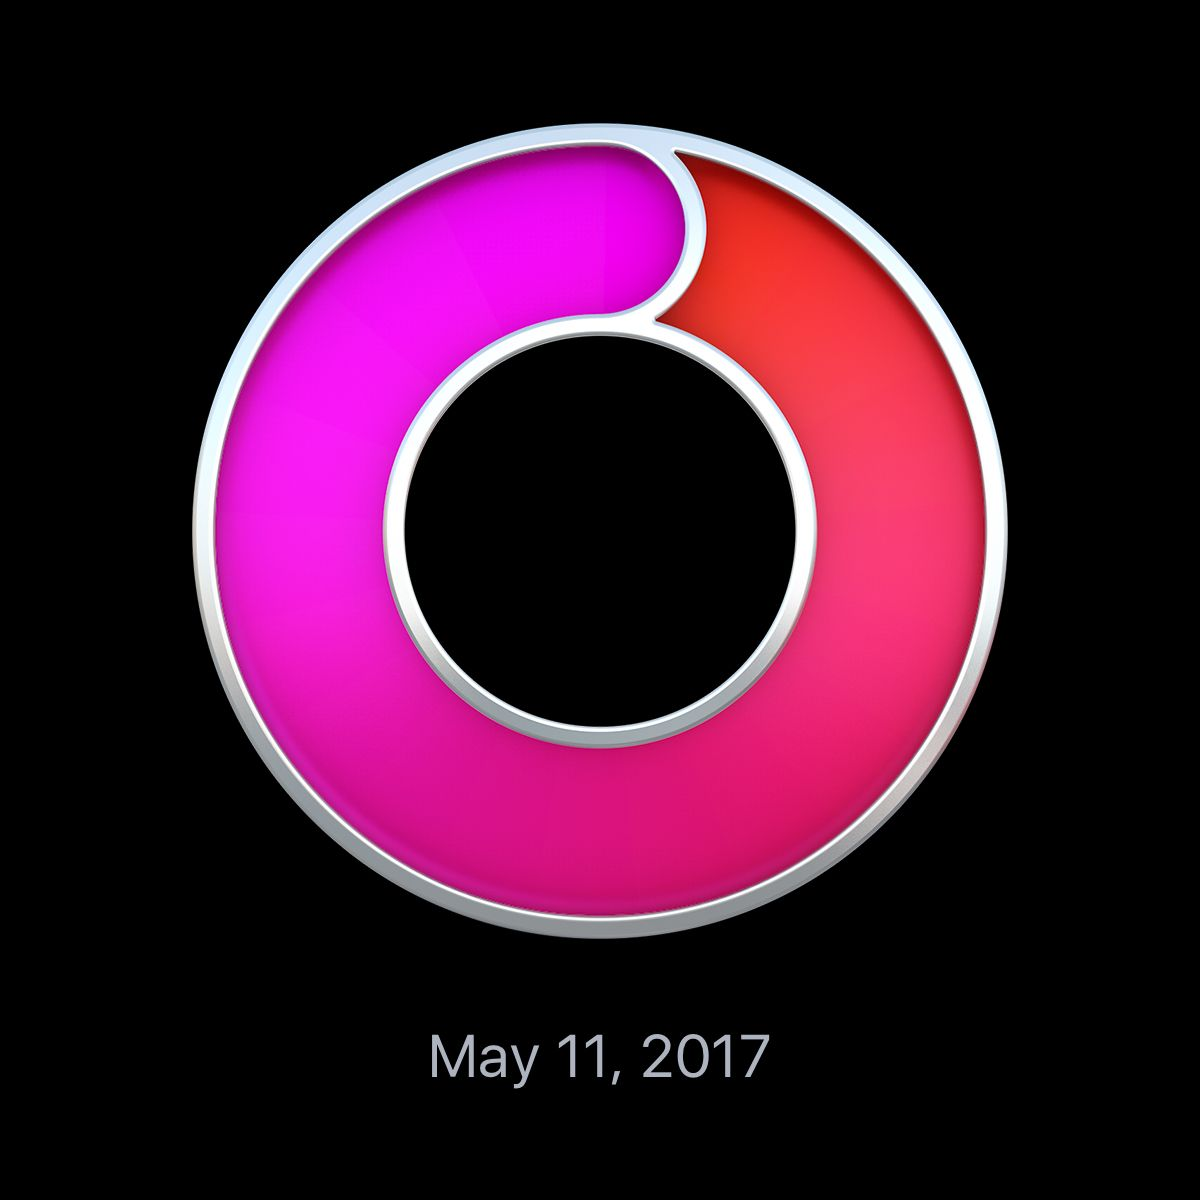 I walked outdoors for 0.56 MI with the Workout app on my